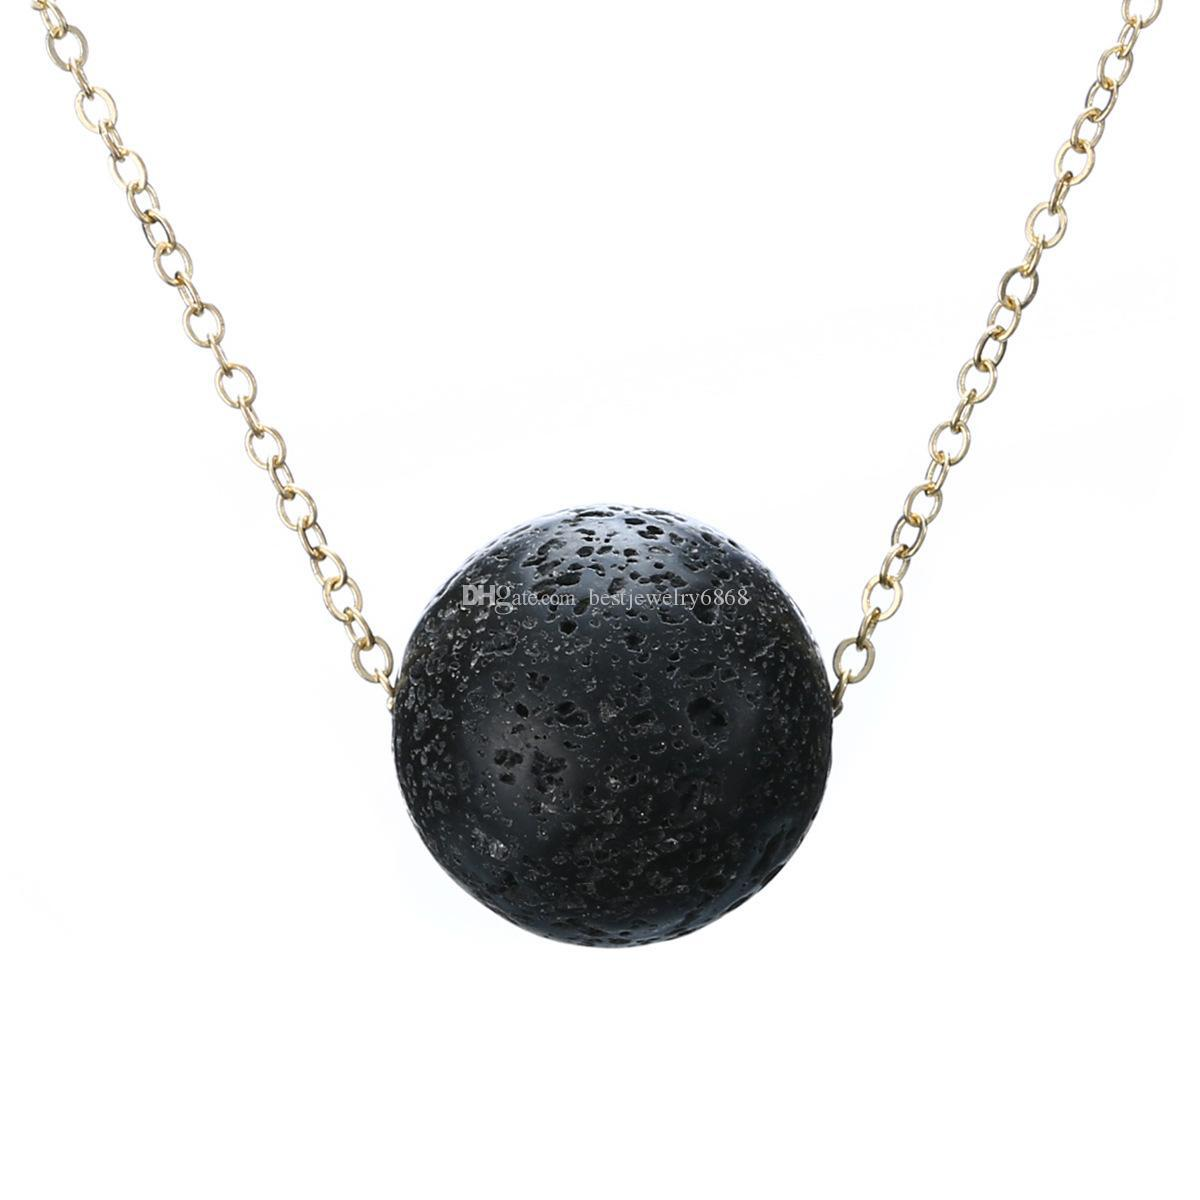 Hot Sell 2 Style Lava Rock necklaces Circle triangle Essential Oil Diffuser Natural stone Pendant Aromatherapy necklaces For women Jewelry